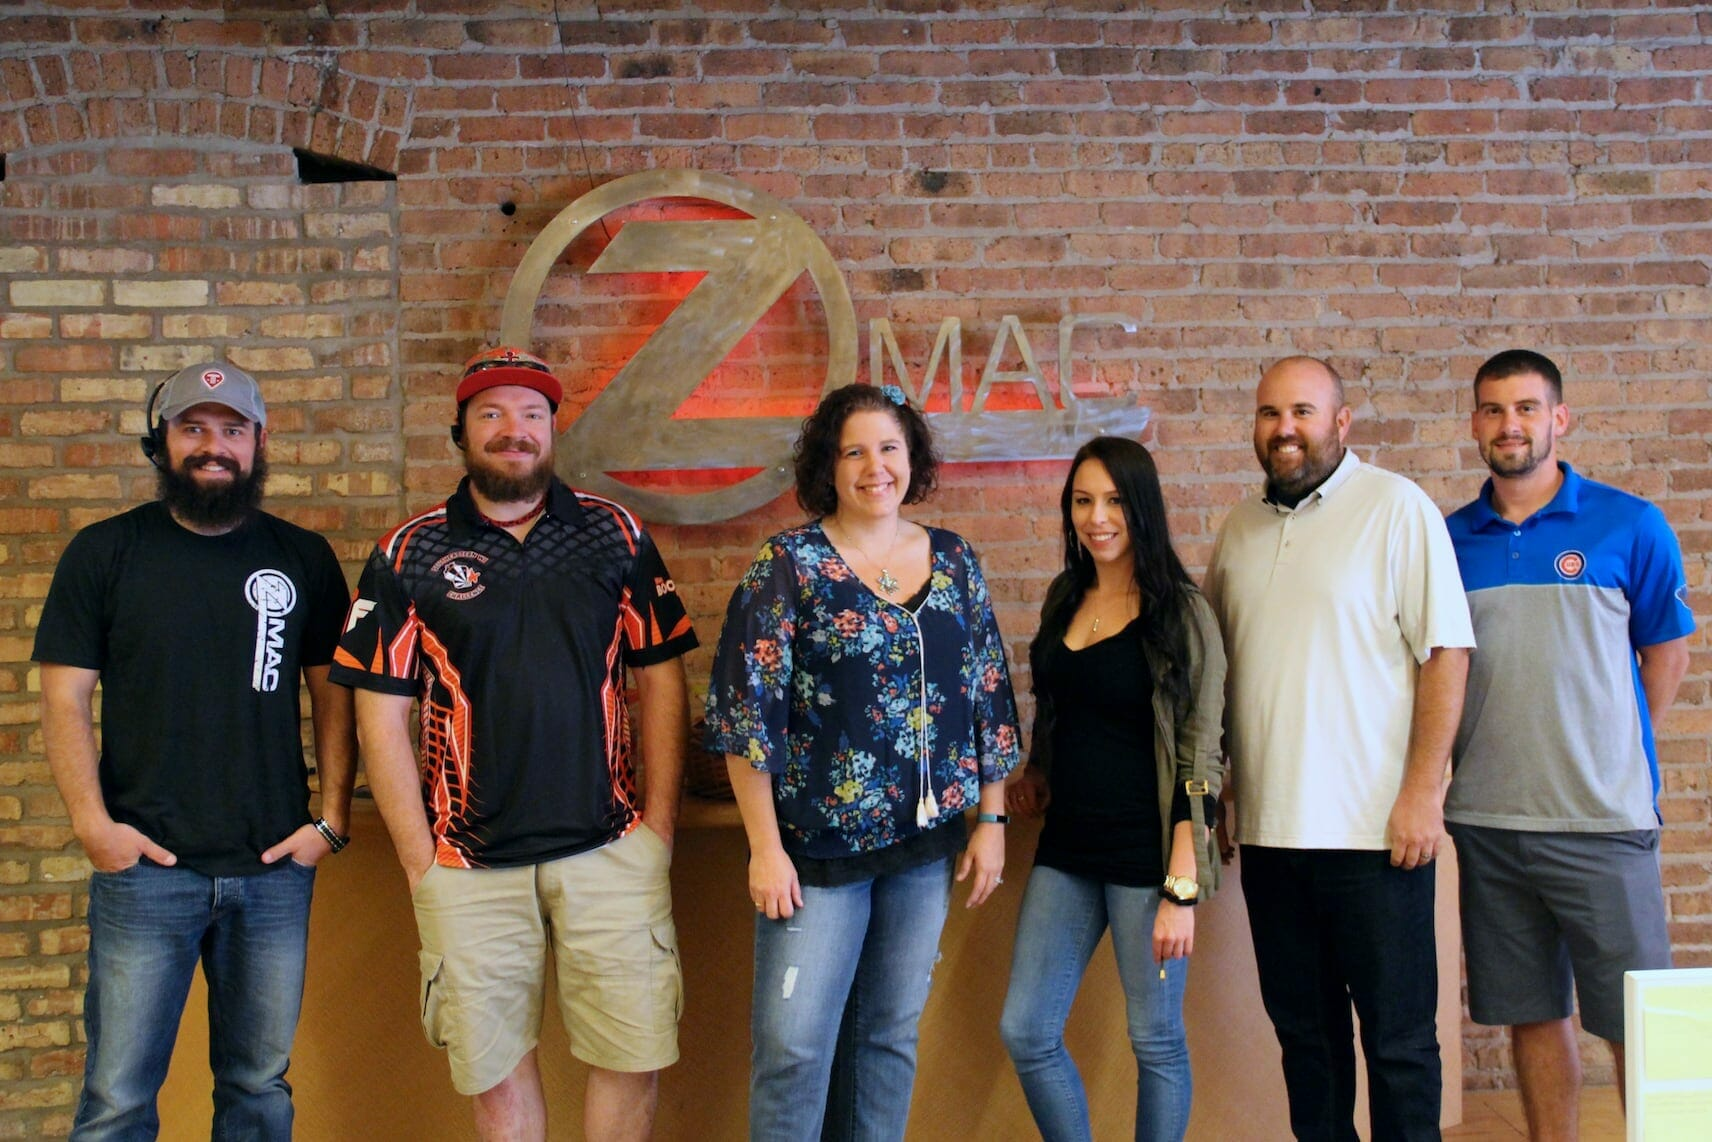 ZMac Logistics Careers - the team